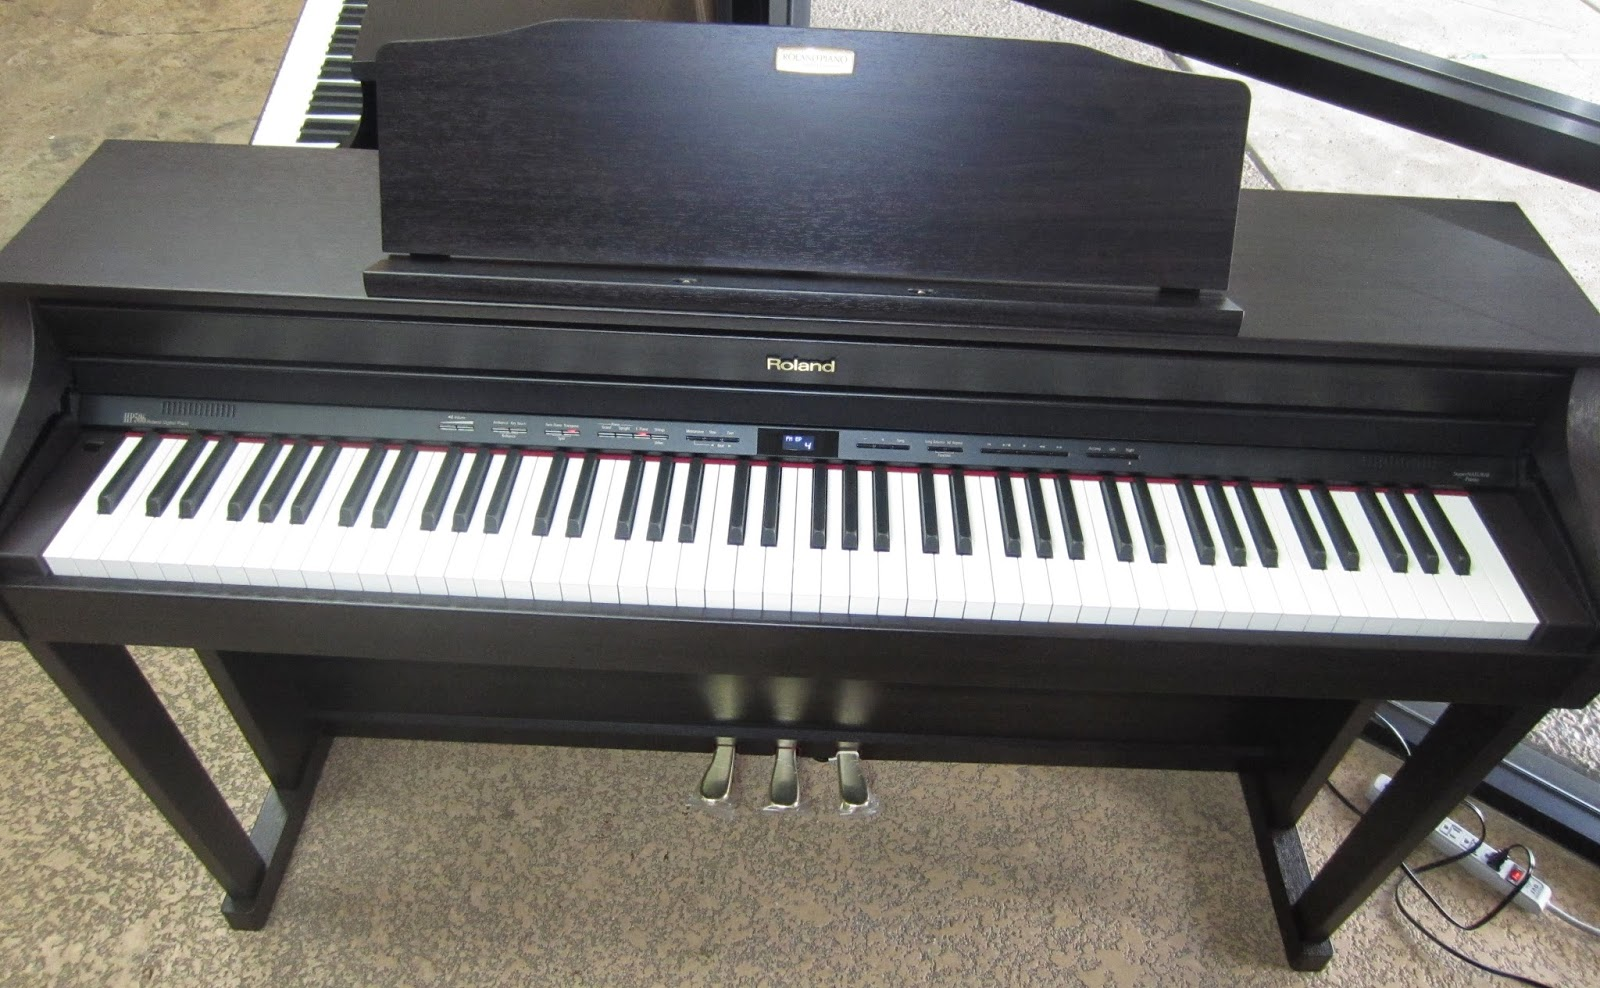 Names of Pedals on Piano Piano Pedal Traits May be